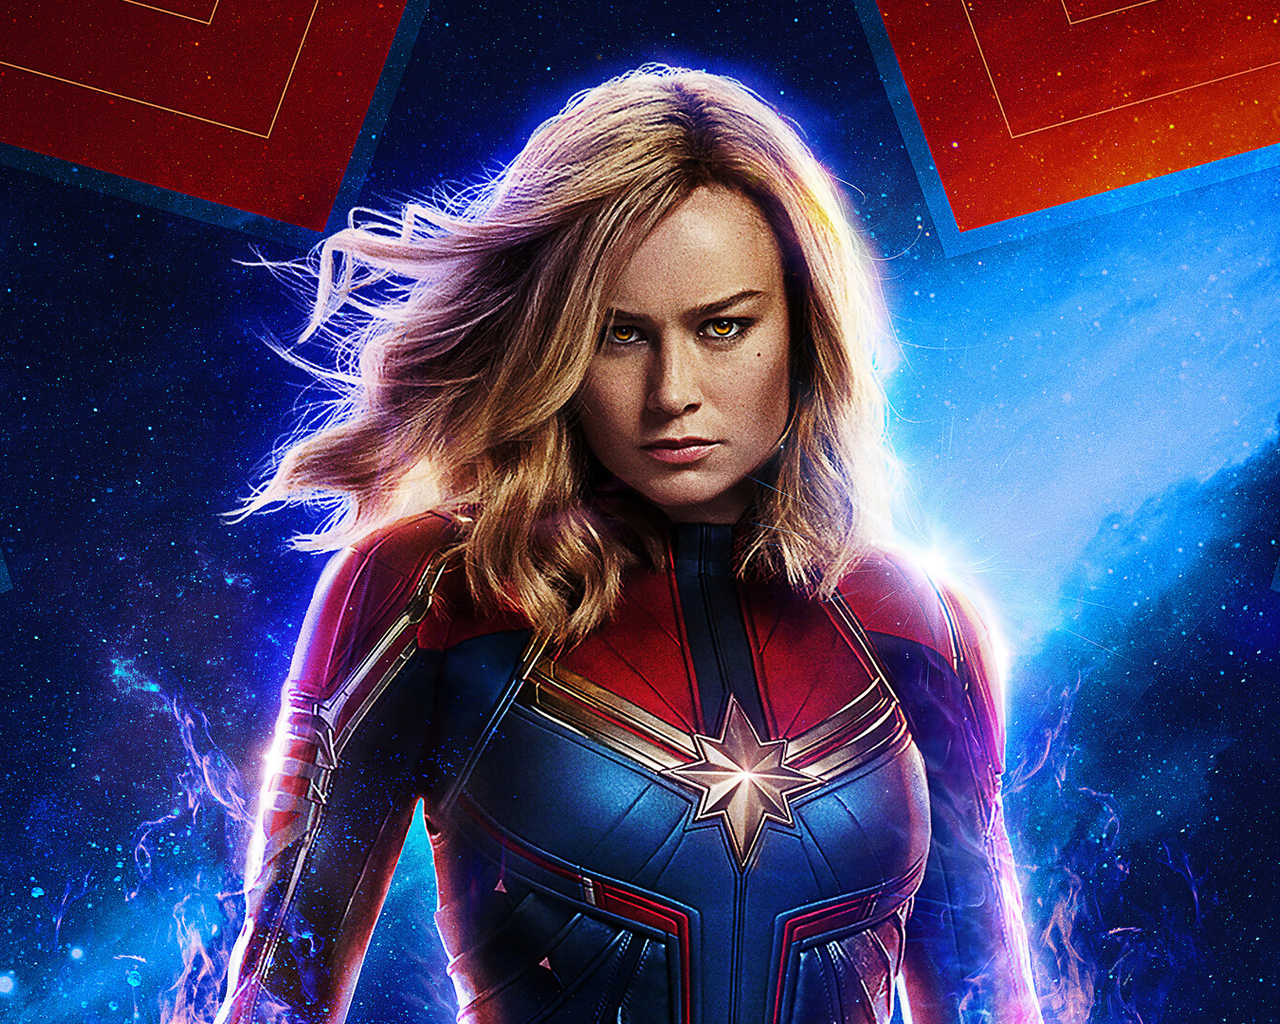 1280x1024 Captain Marvel New Posters 2019 1280x1024 ...